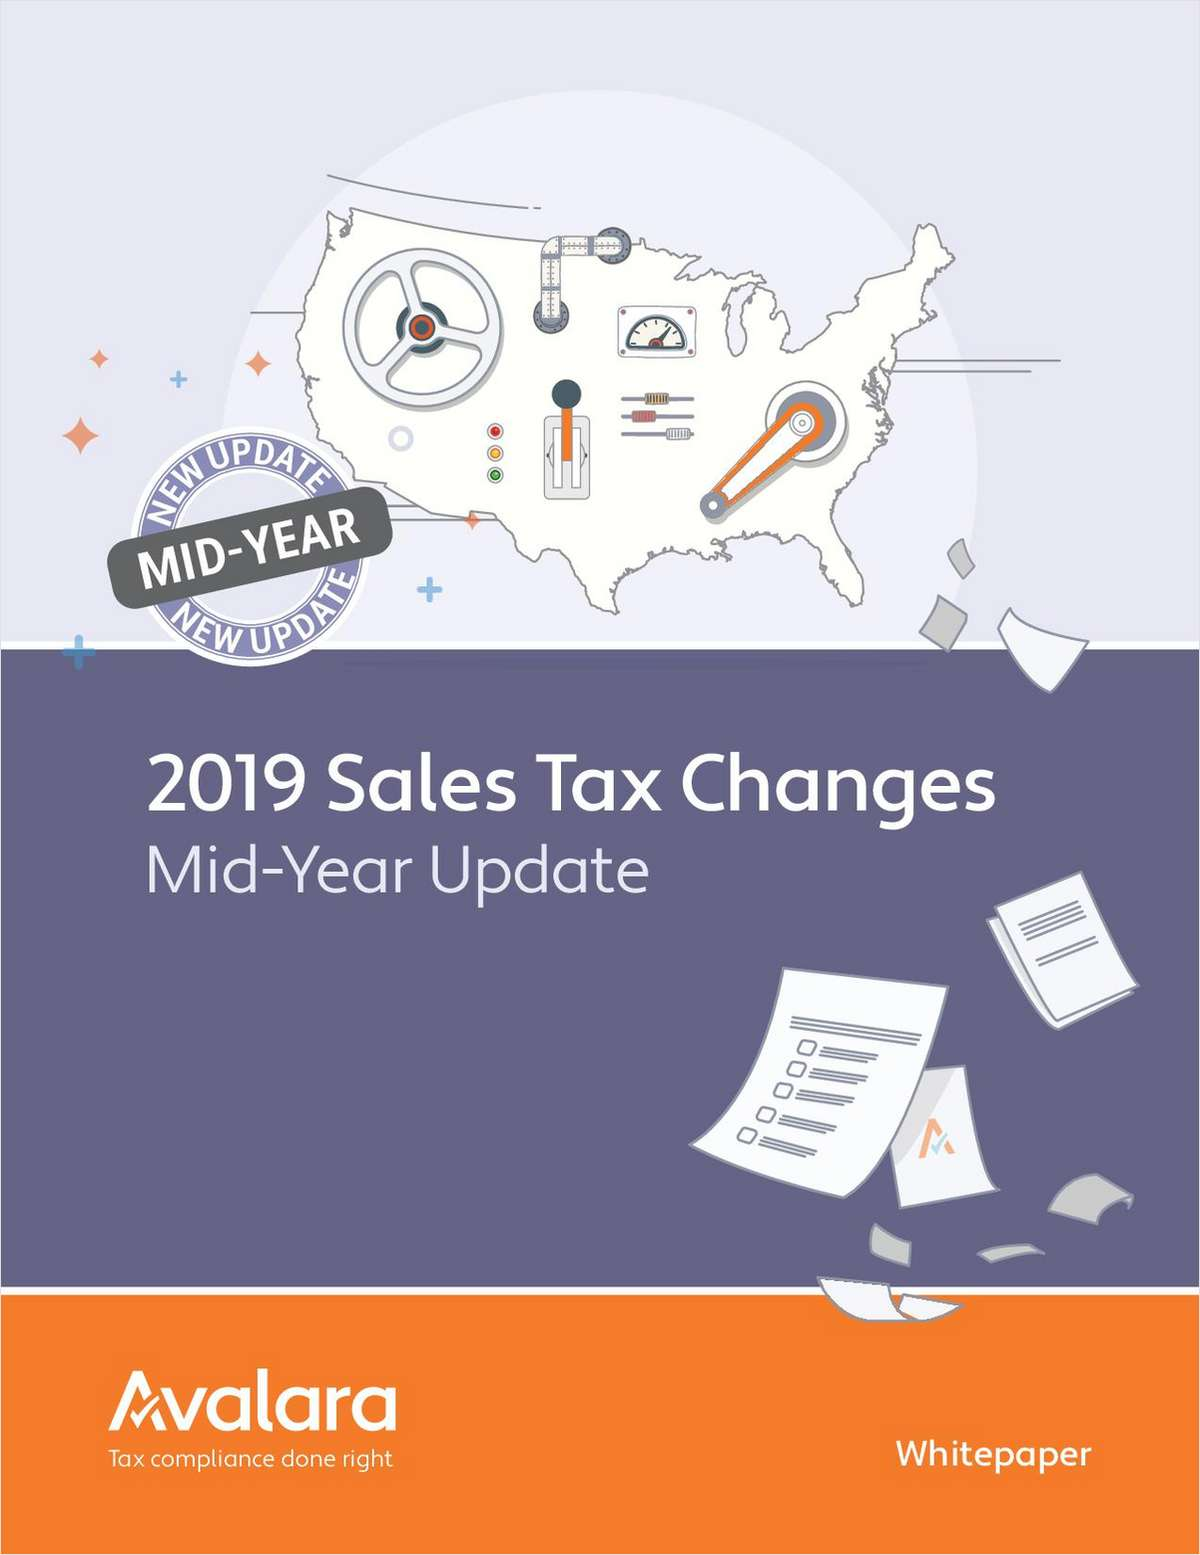 2019 Sales Tax Changes Mid-Year Update